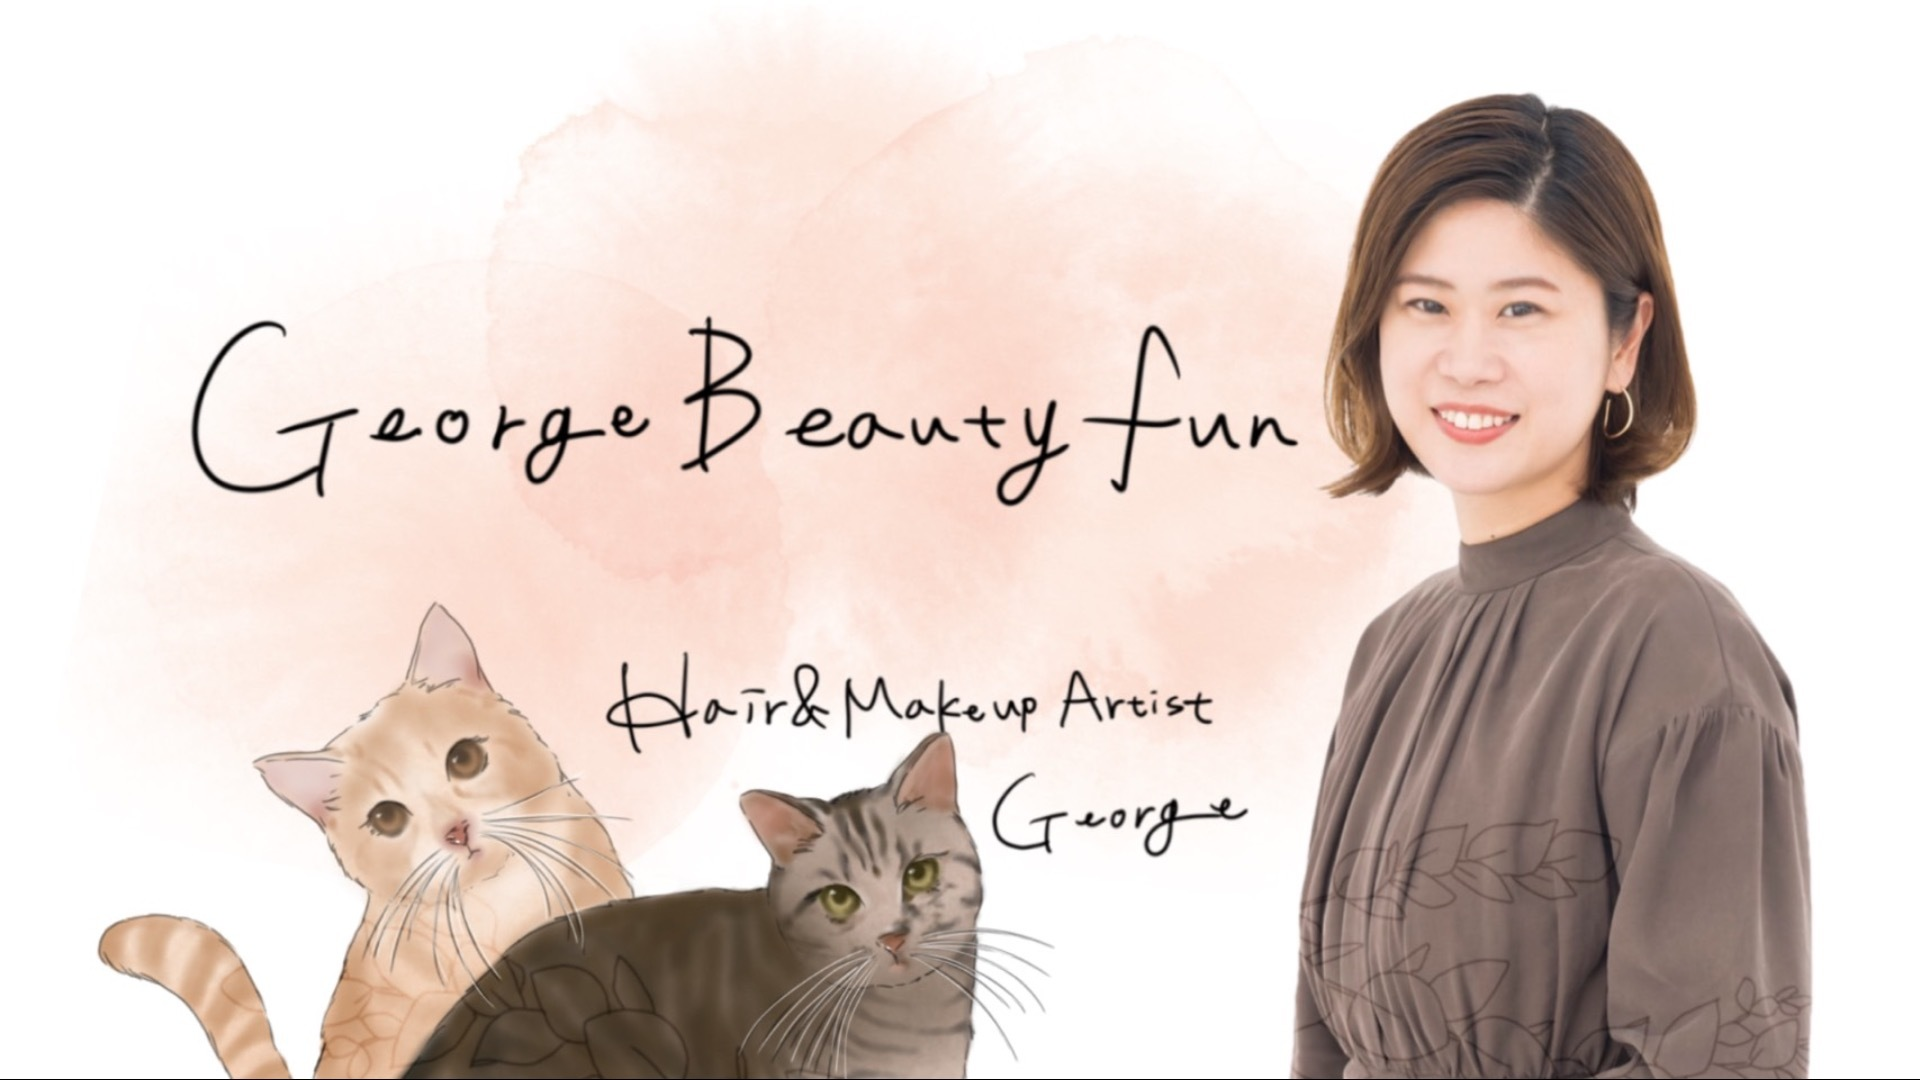 hairmakeupartist George - George Beauty Fun - DMM オンラインサロン